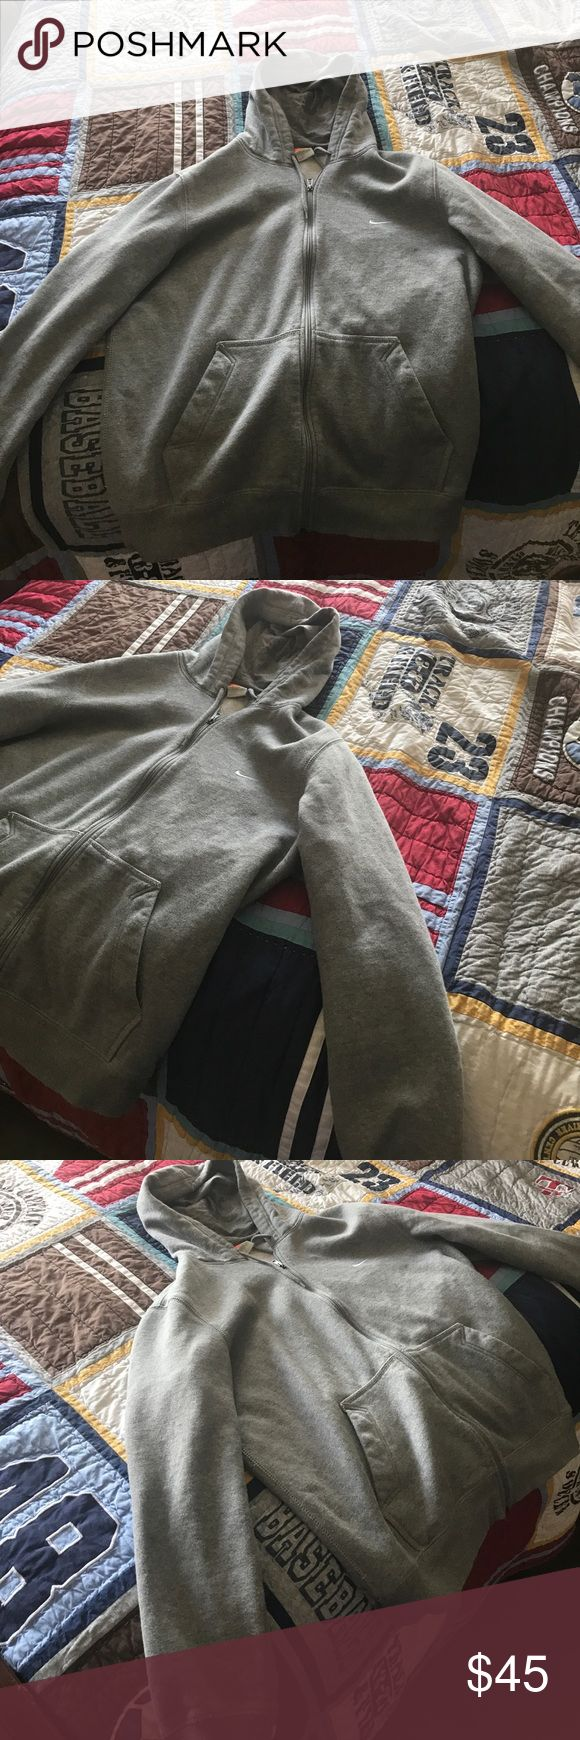 grey nike jacket it is a size extra large. it is not new Nike Jackets & Coats Performance Jackets